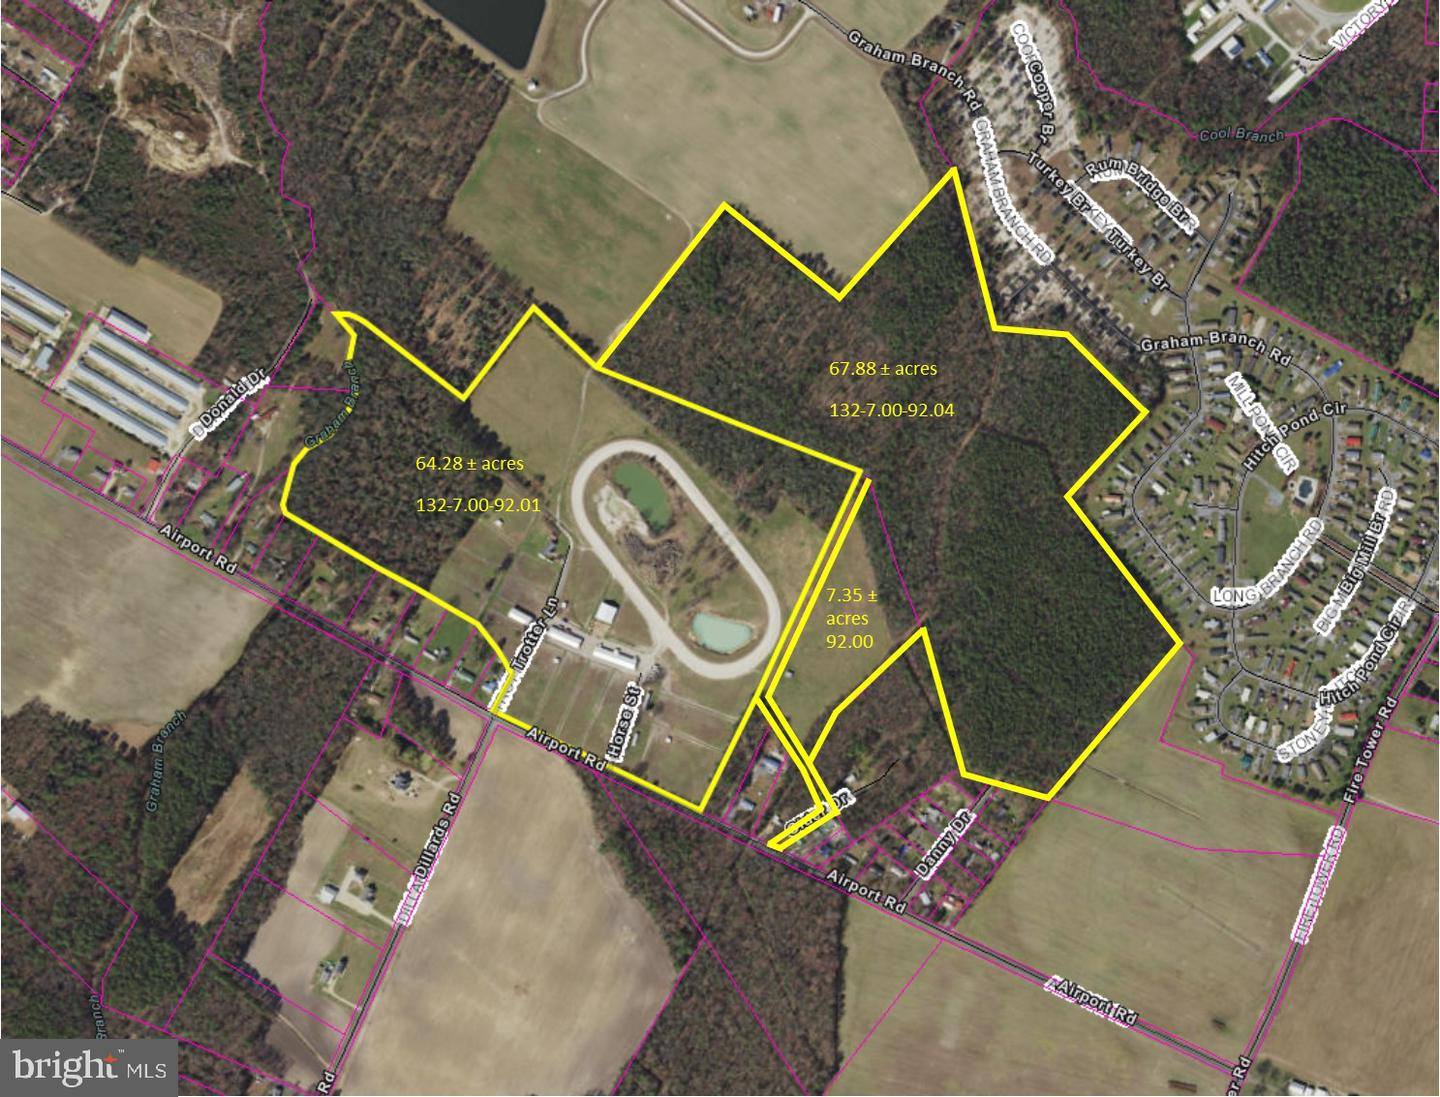 View this Seaford, Delaware Listing - Real Estate and Home Sales